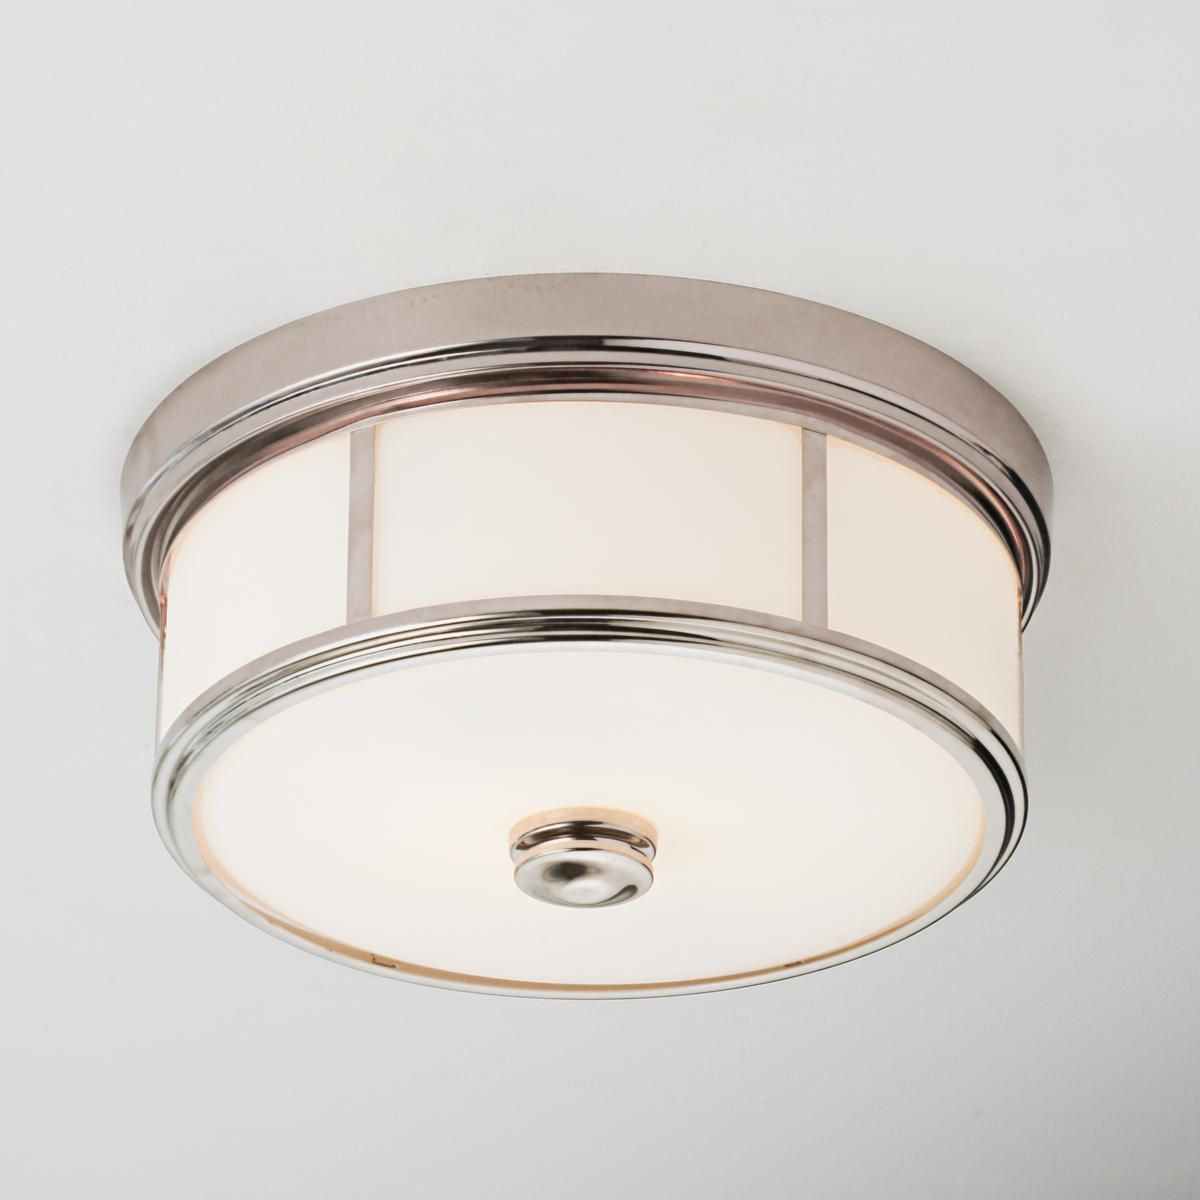 Traditional Urban Cage Ceiling Light Cage Ceiling Light Ceiling